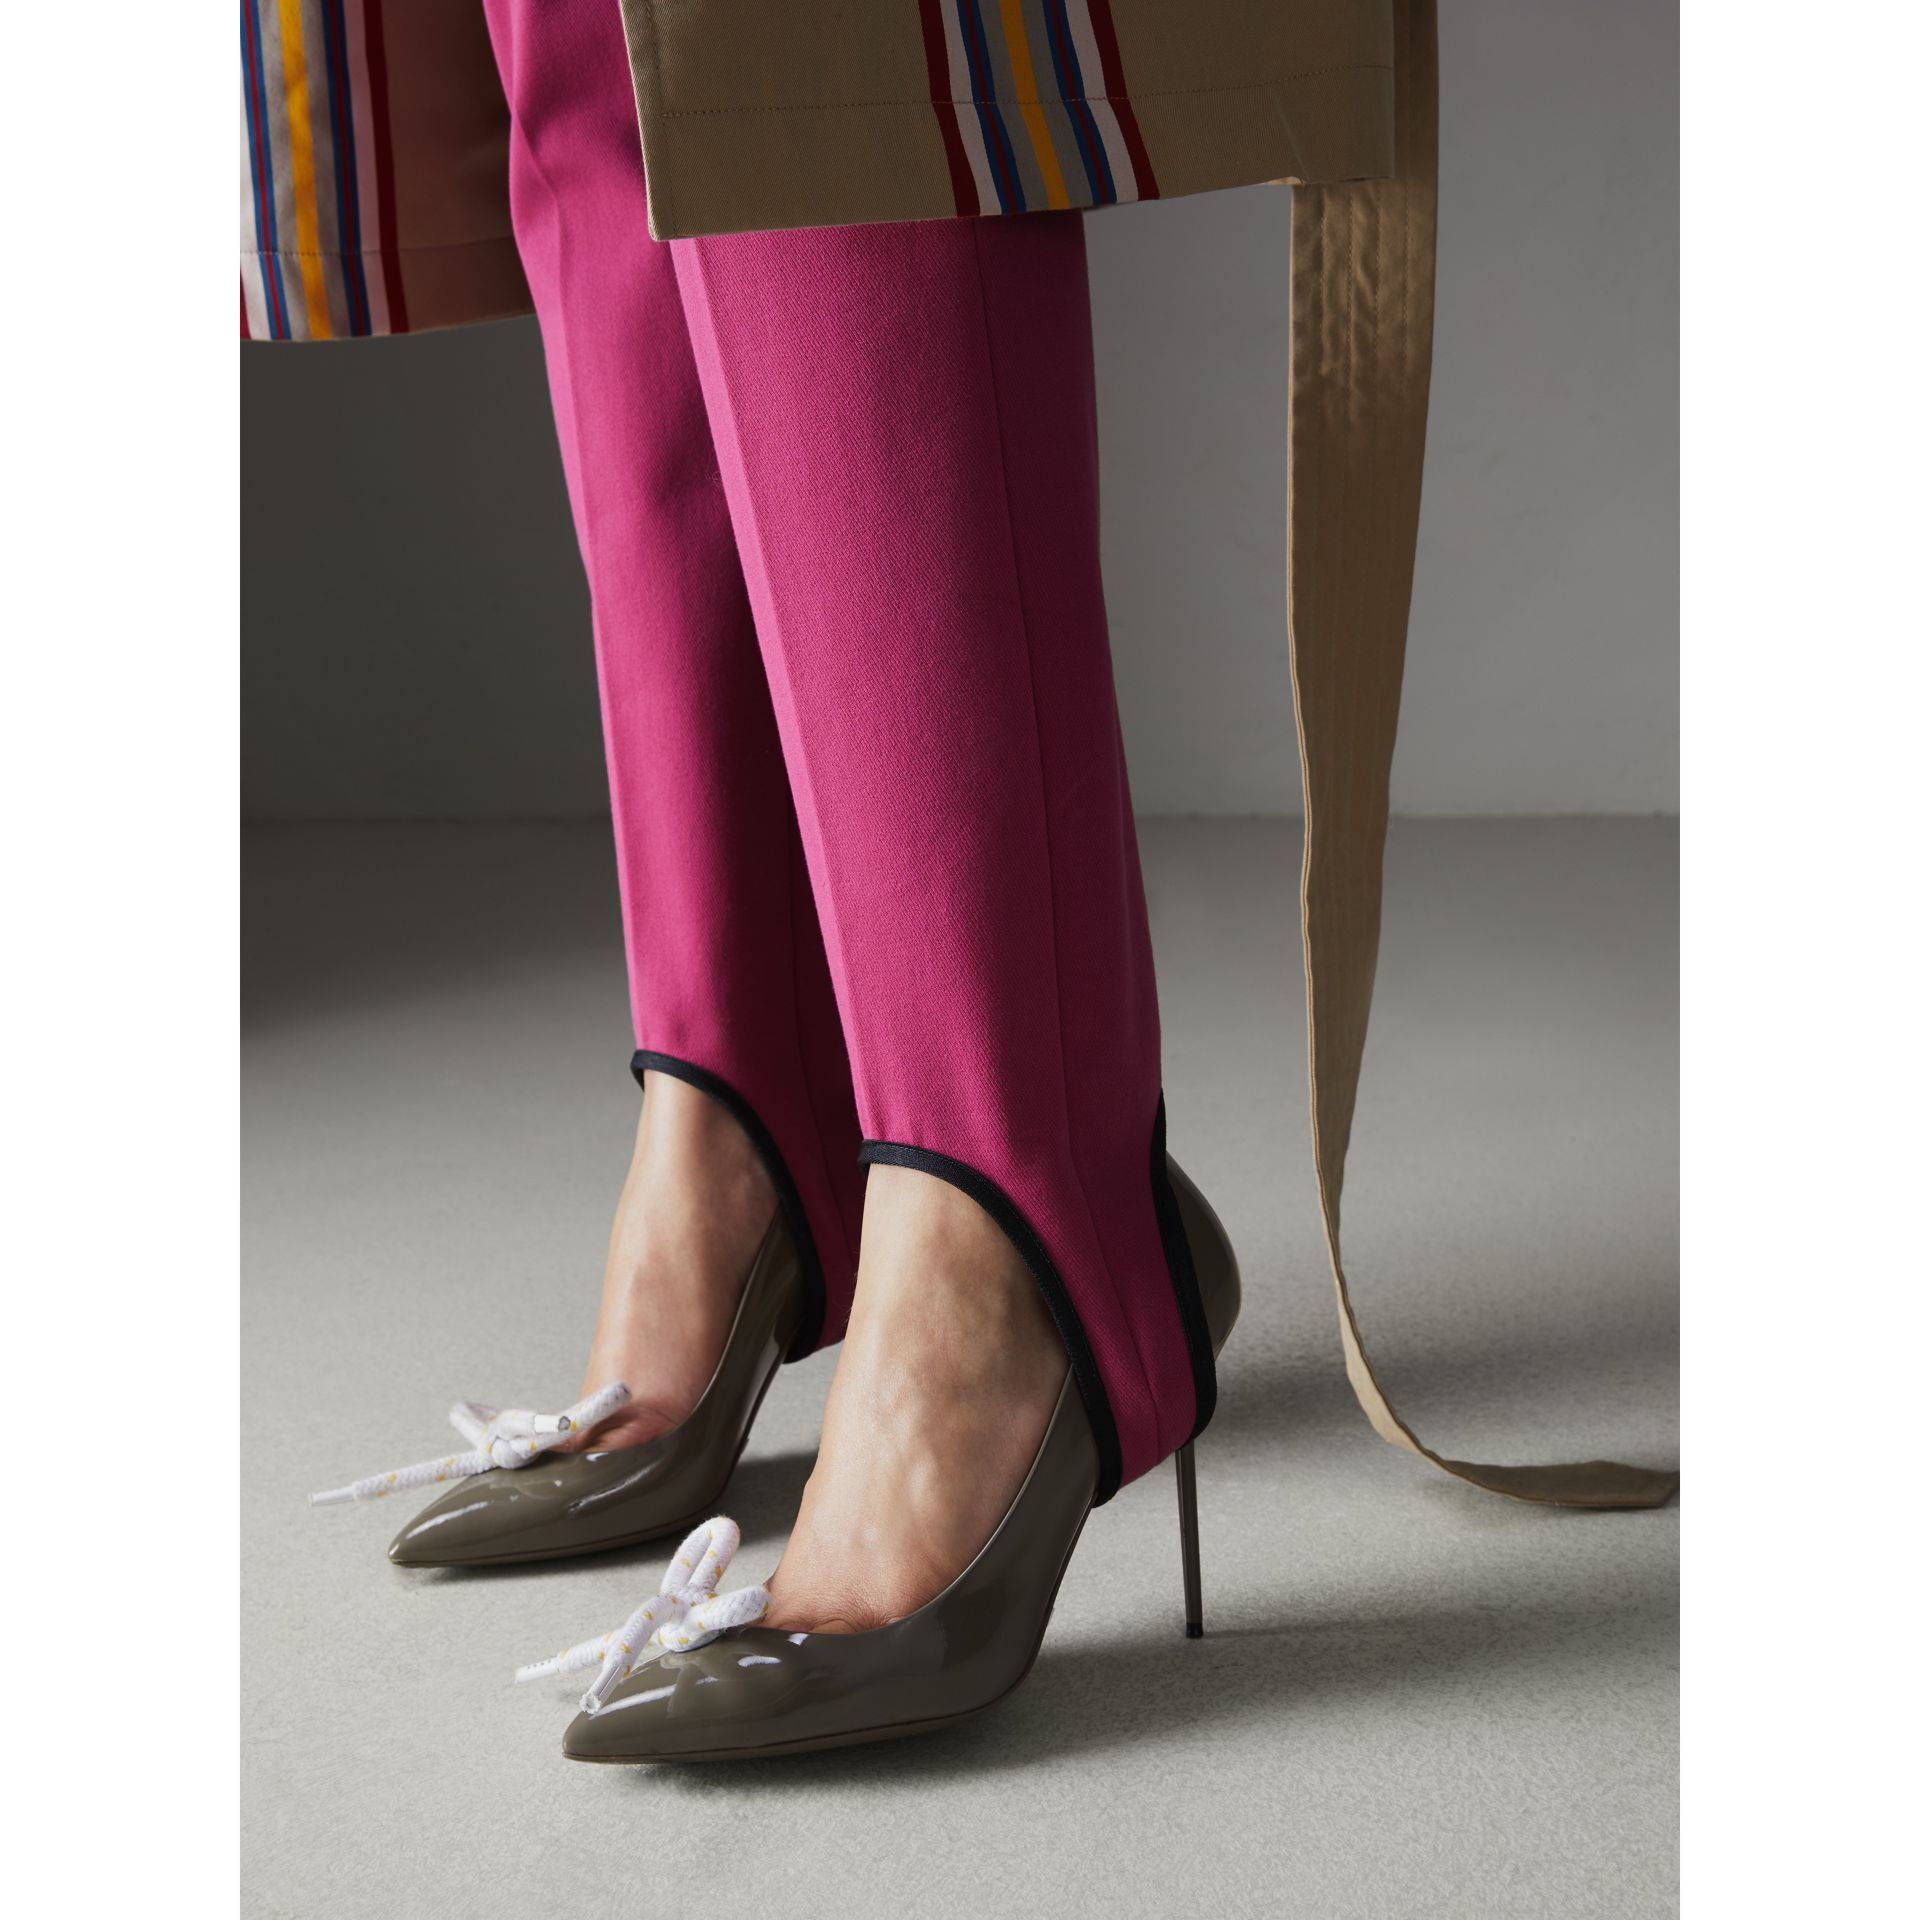 Stiletto-Pumps aus Lackleder mit Kordeldetail (Taupe-grau) - Damen | Burberry - Galerie-Bild 2